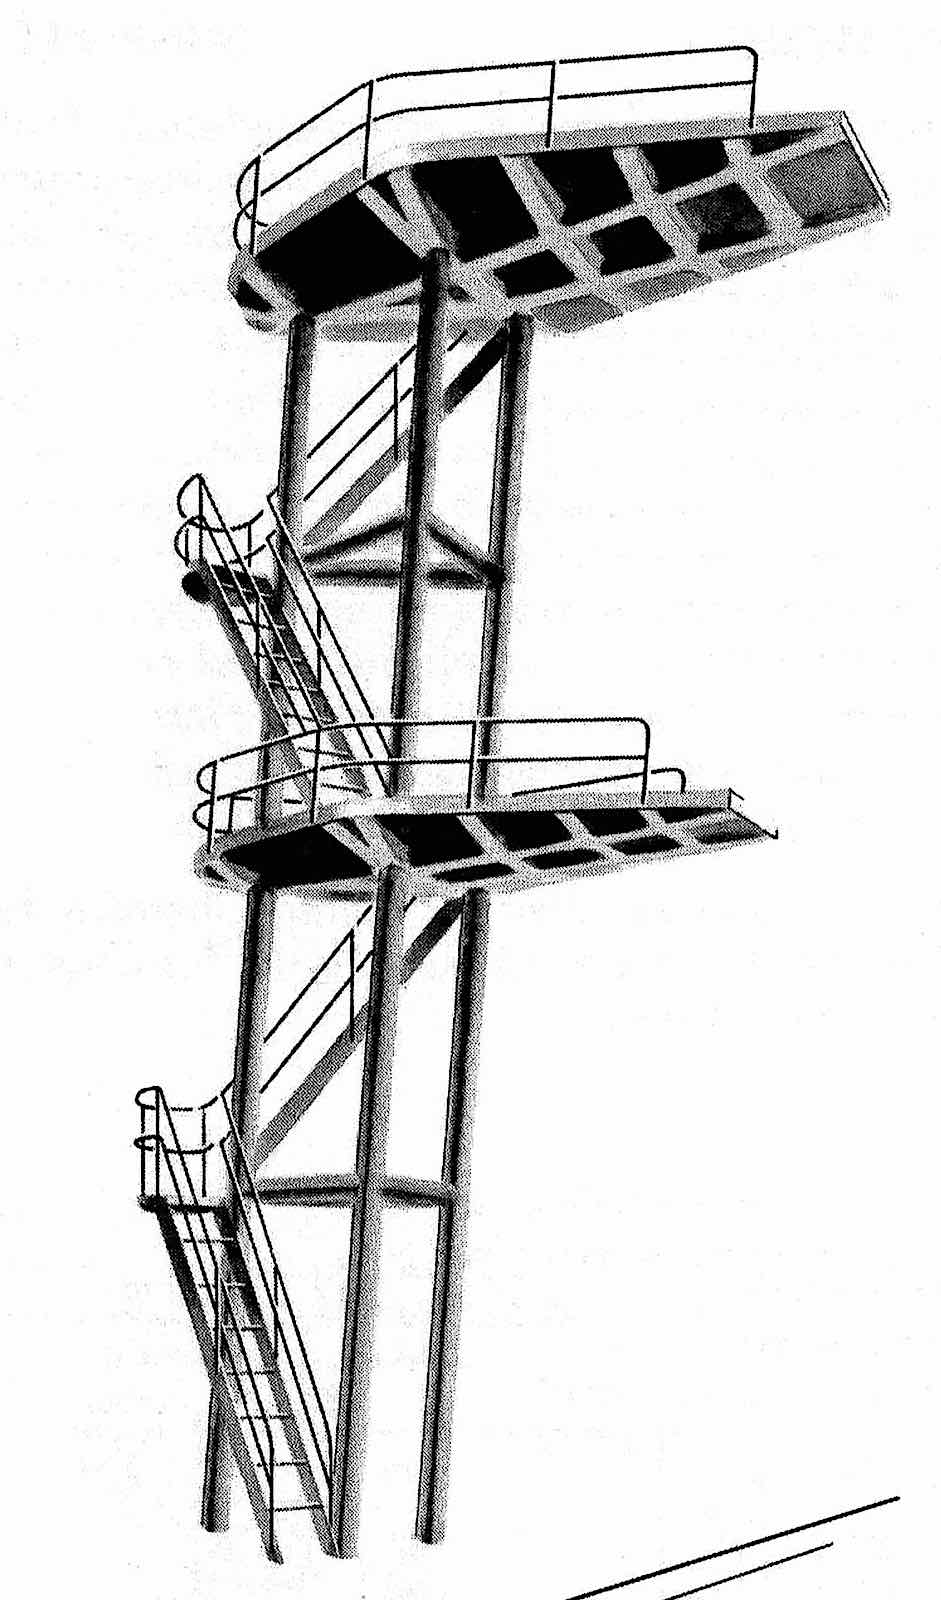 a 1960s high diving tower illustrated